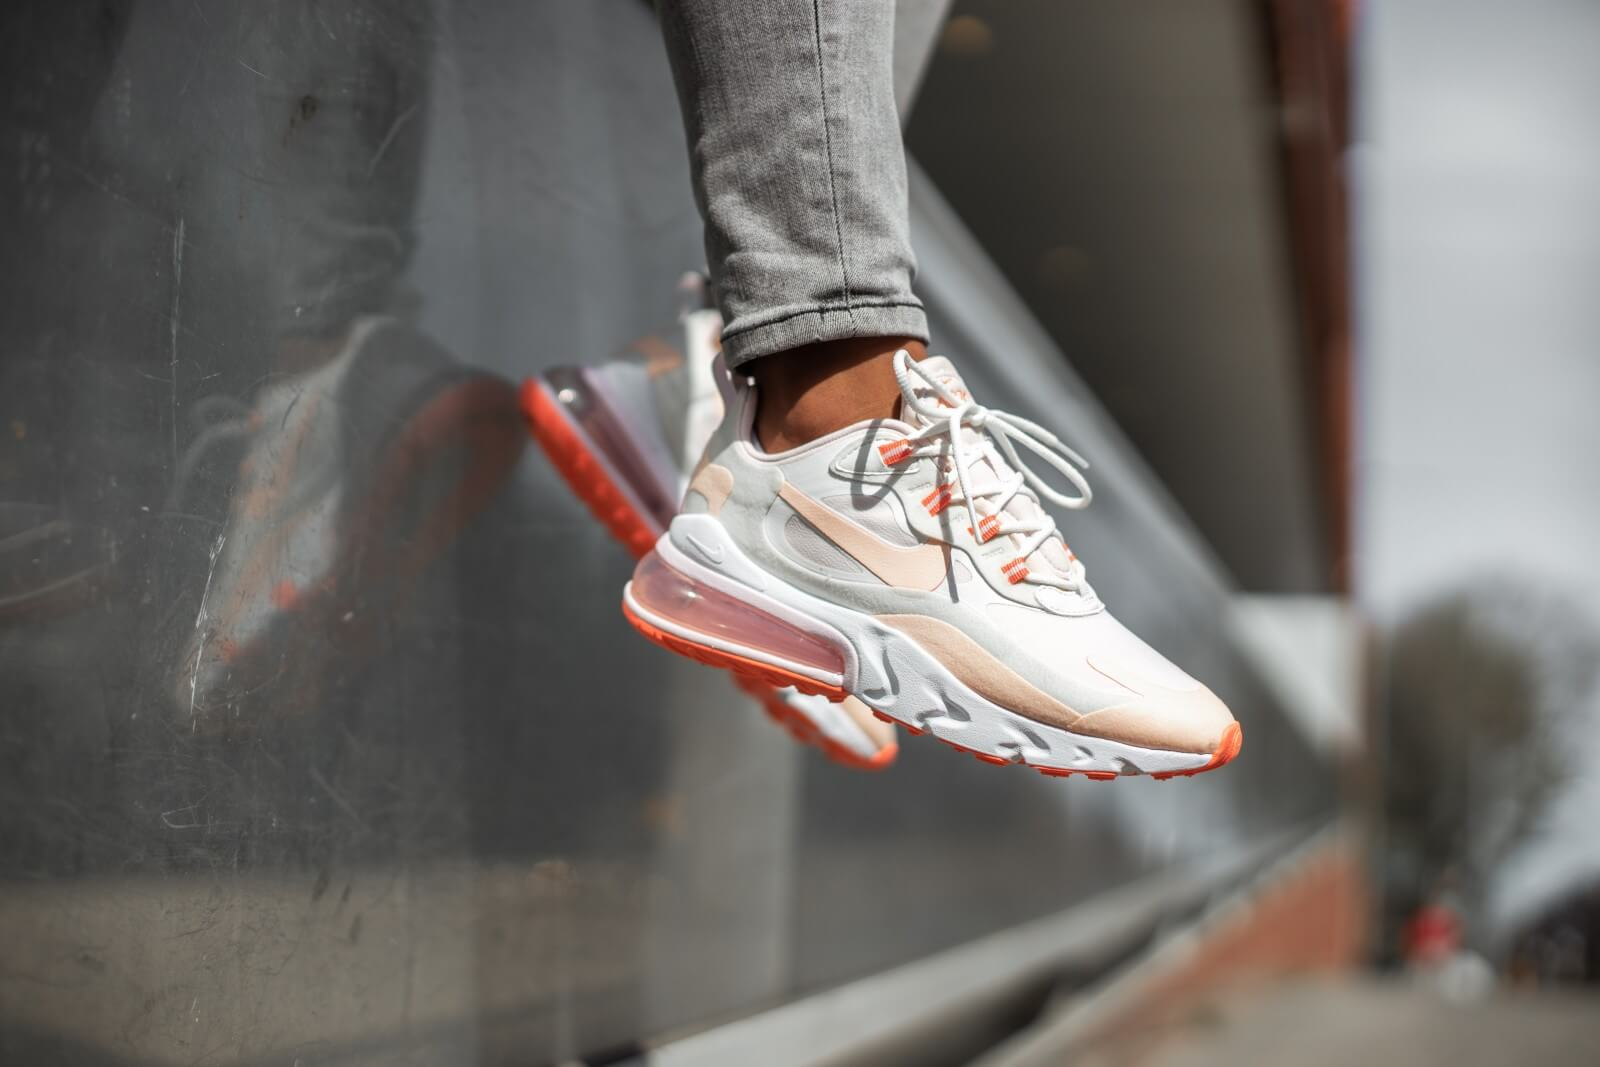 Nike Women S Air Max 270 React Summit White Crimson Tint Cj0619 103